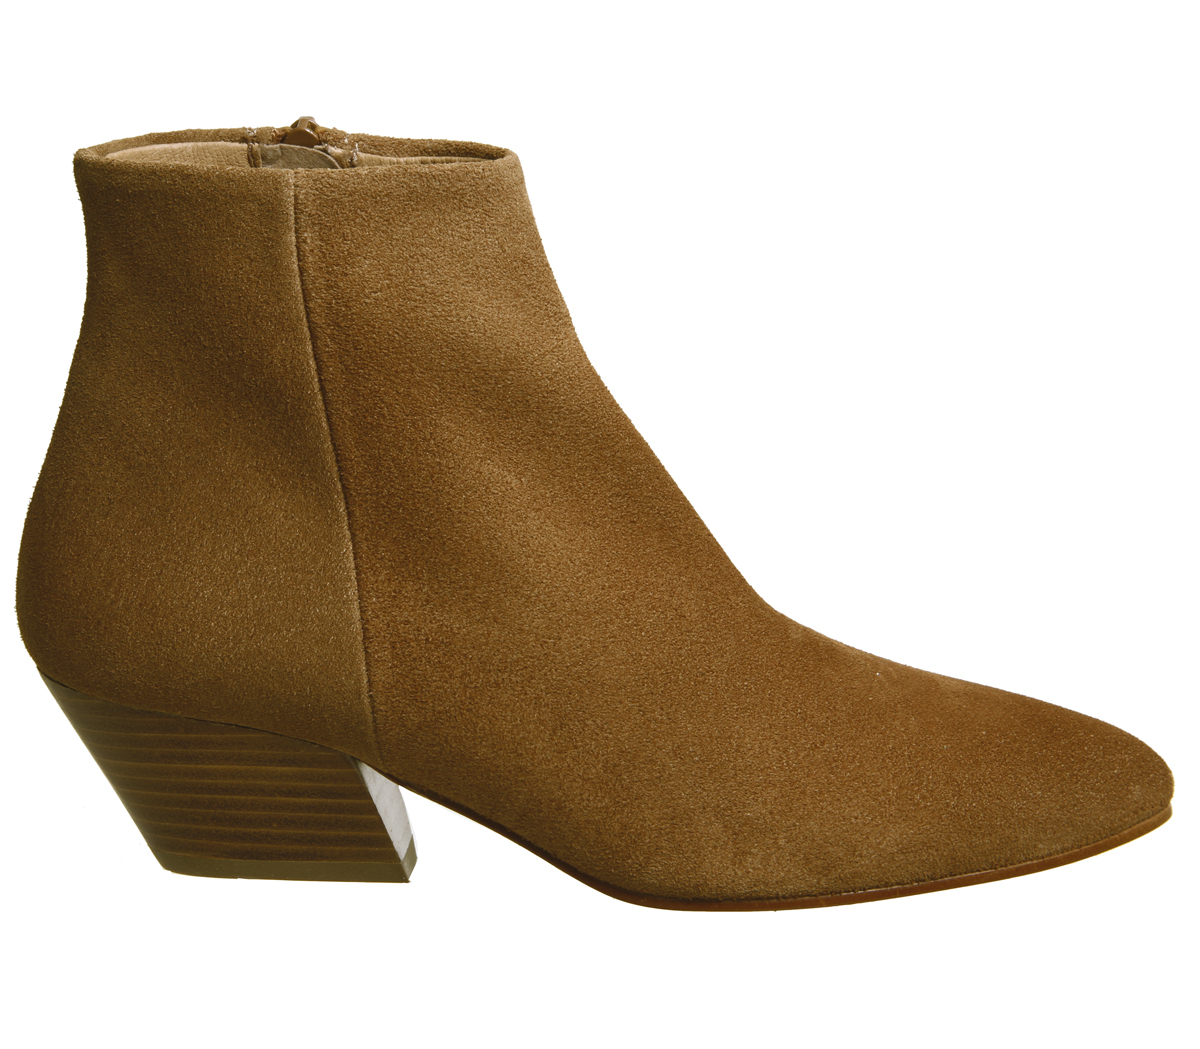 09bcc1766e Sentinel Womens Office Atone Western Block Heel Boots Tan Suede Boots